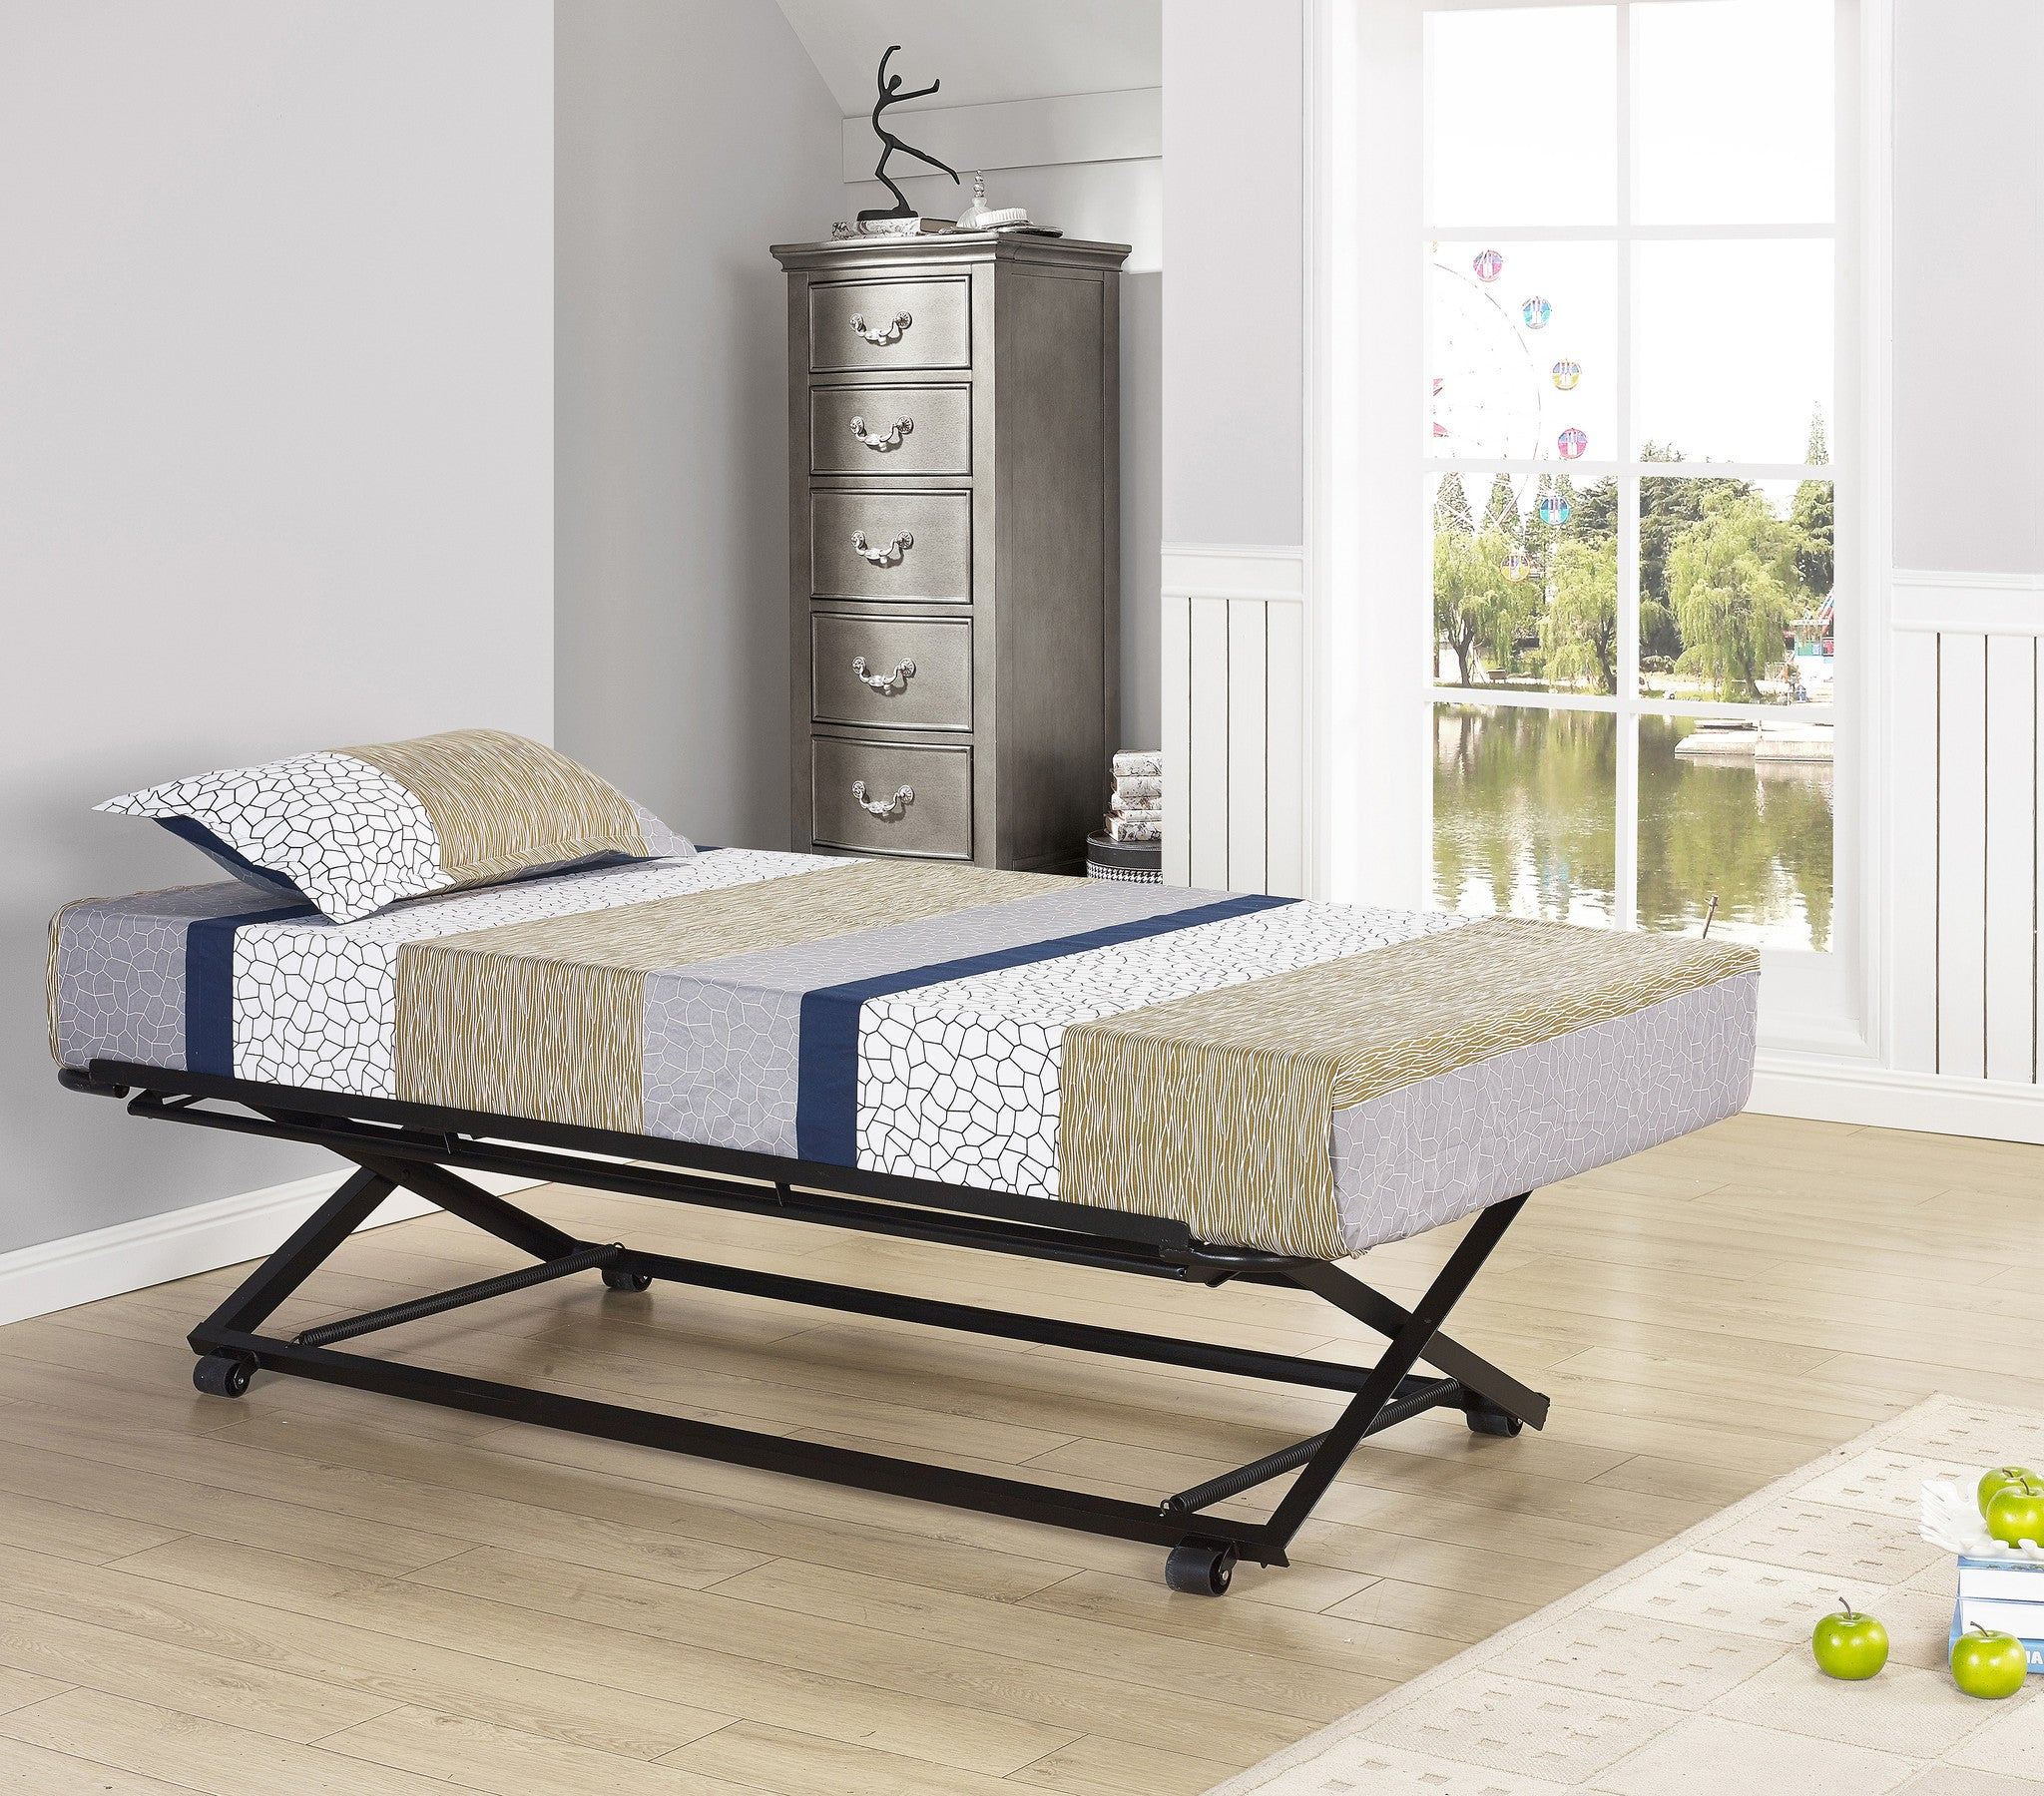 Archer Pop Up Trundle High Riser Bed Black Metal 39 Twin For Daybeds Pilaster Designs